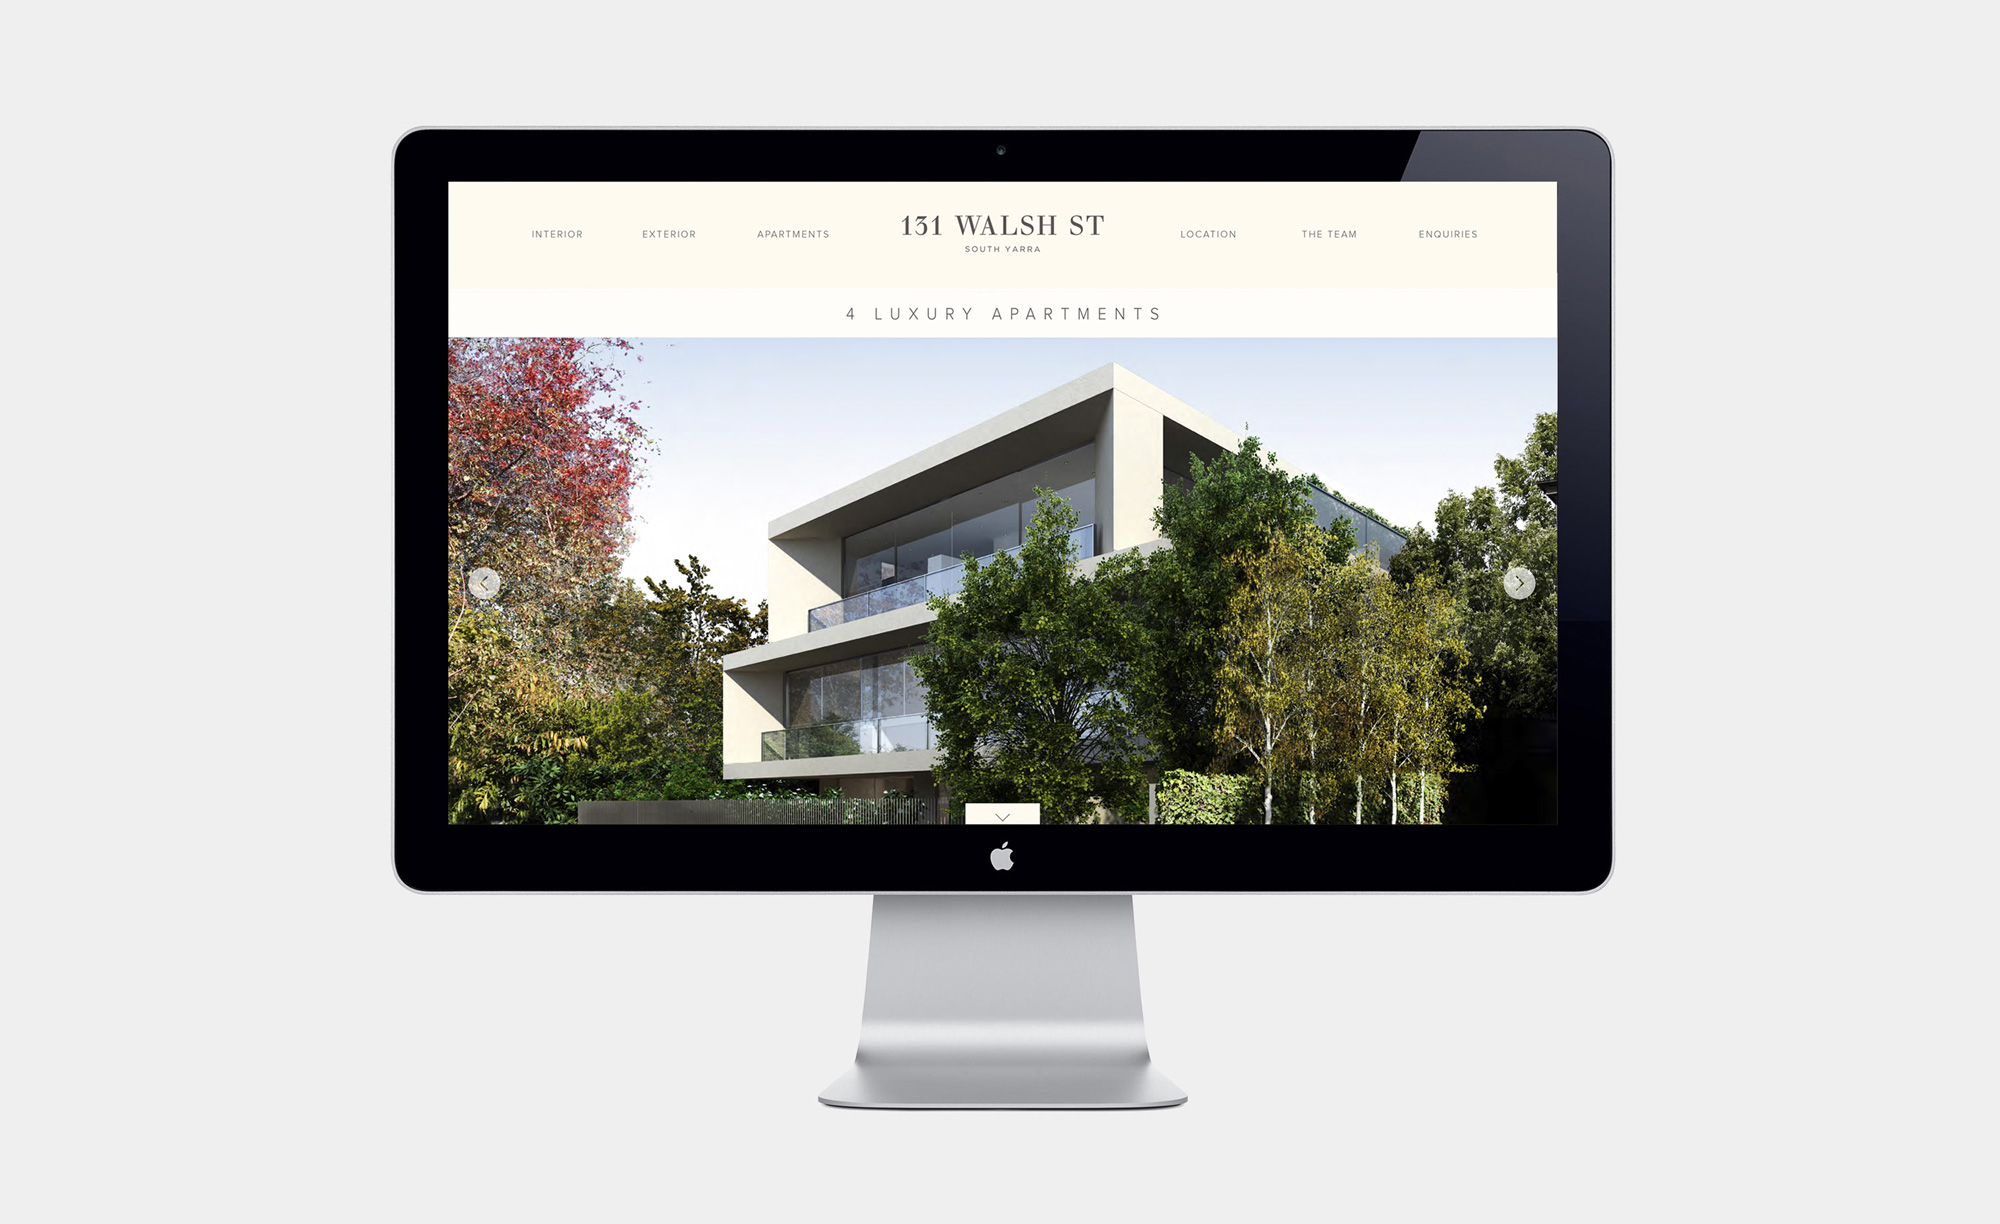 Website for 131 Walsh Street property